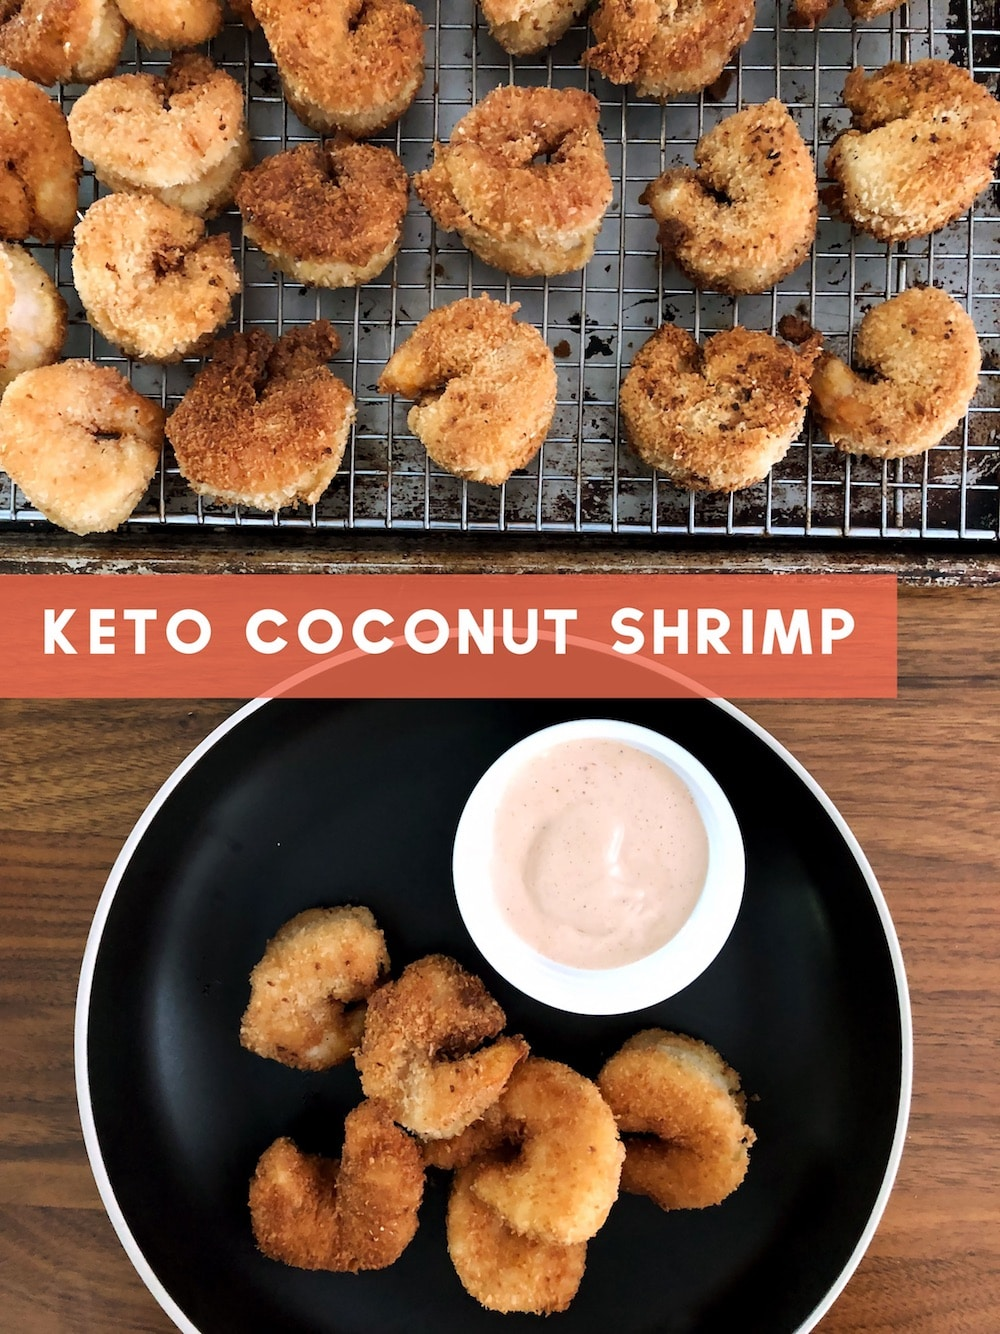 Keto Coconut Shrimp & Creole Cocktail Sauce